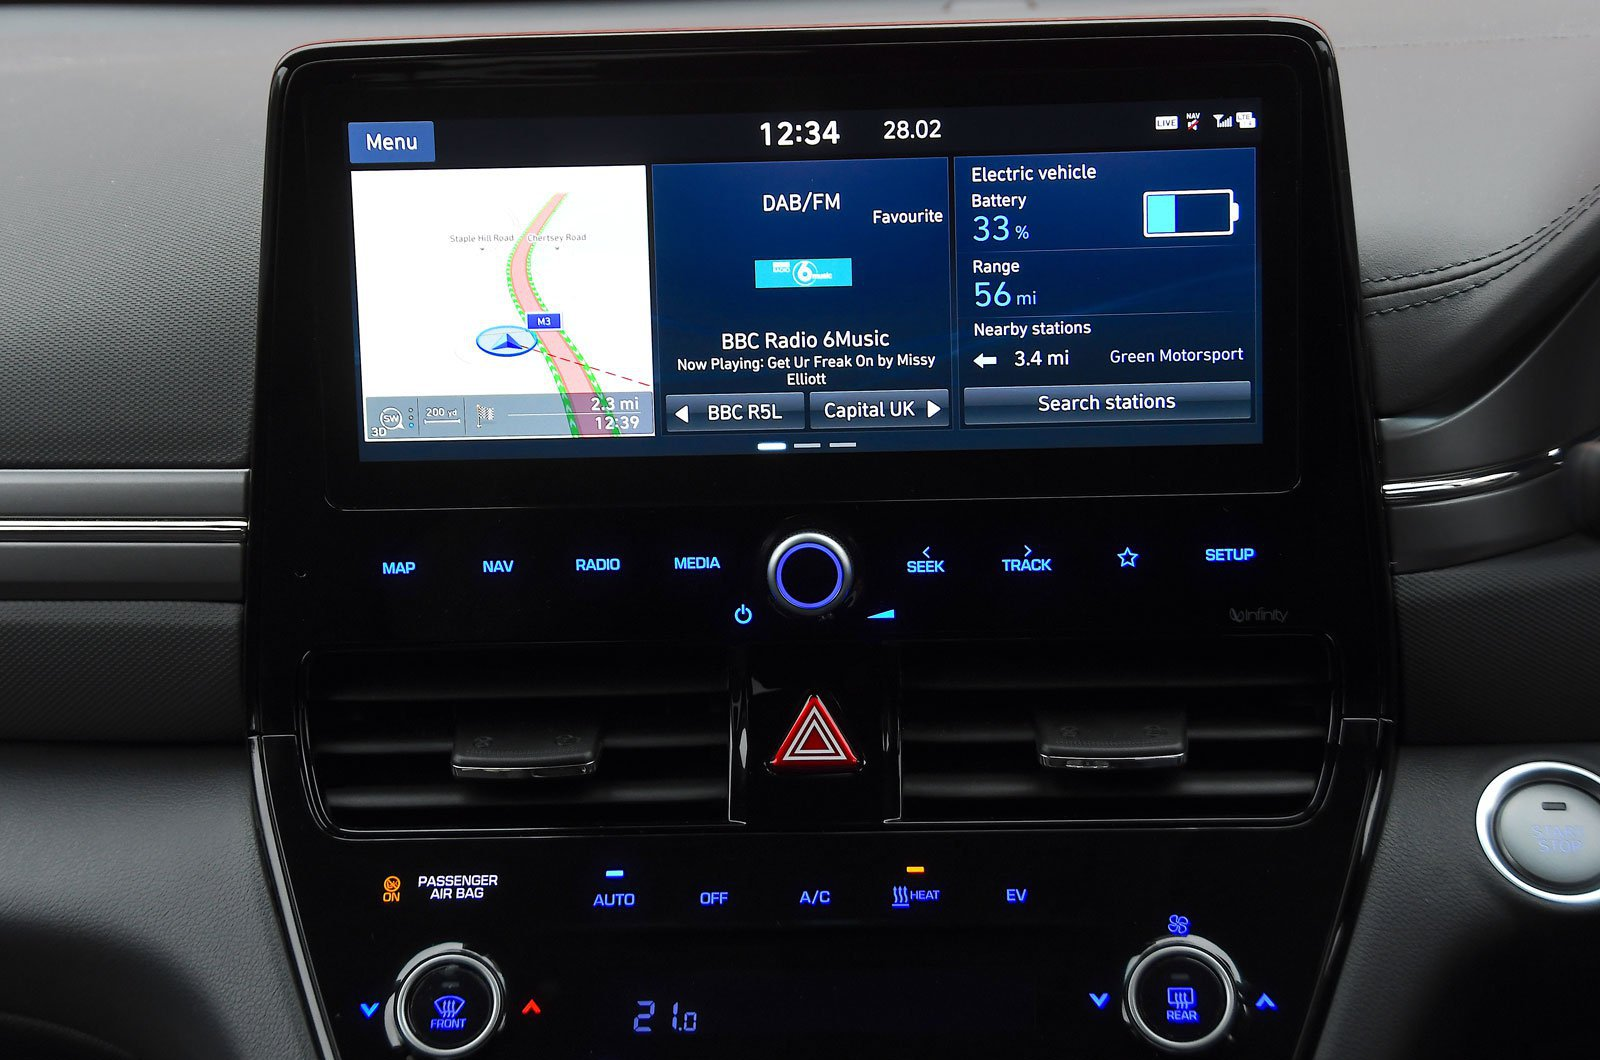 Hyundai infotainment screen